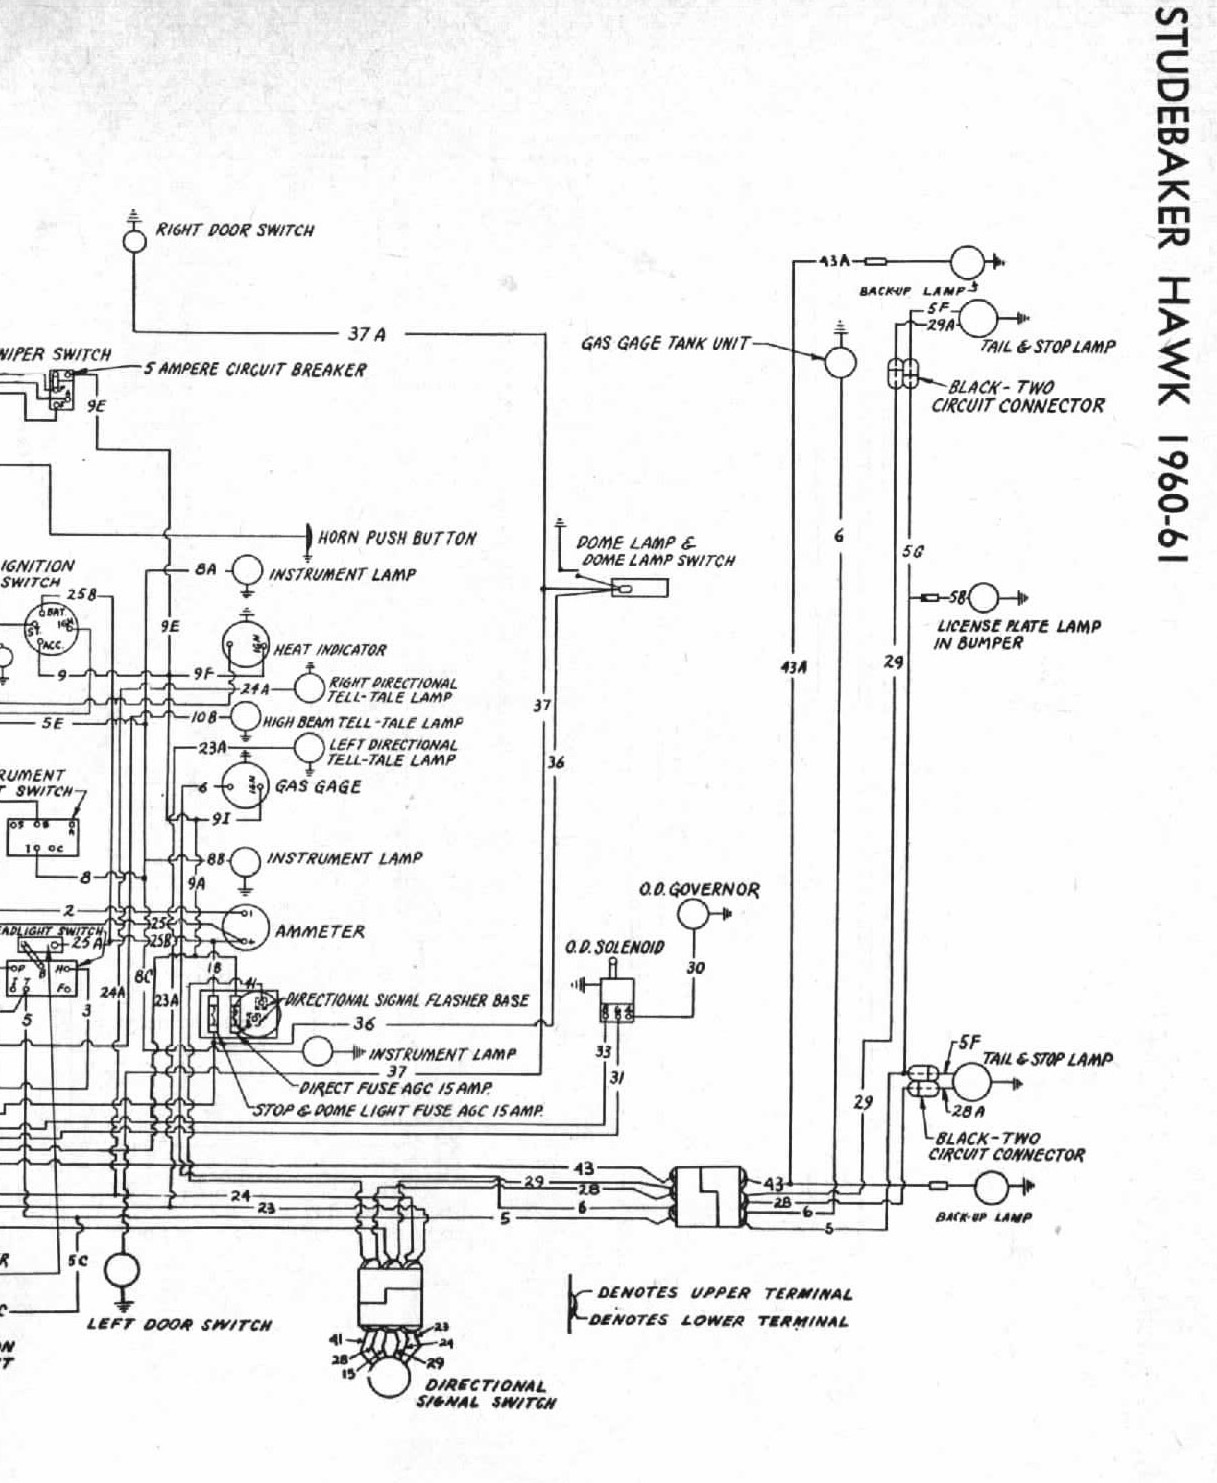 1964 avanti wiring diagram automotive wiring diagram u2022 rh nfluencer co 1968 Avanti 1964 Avanti Colors